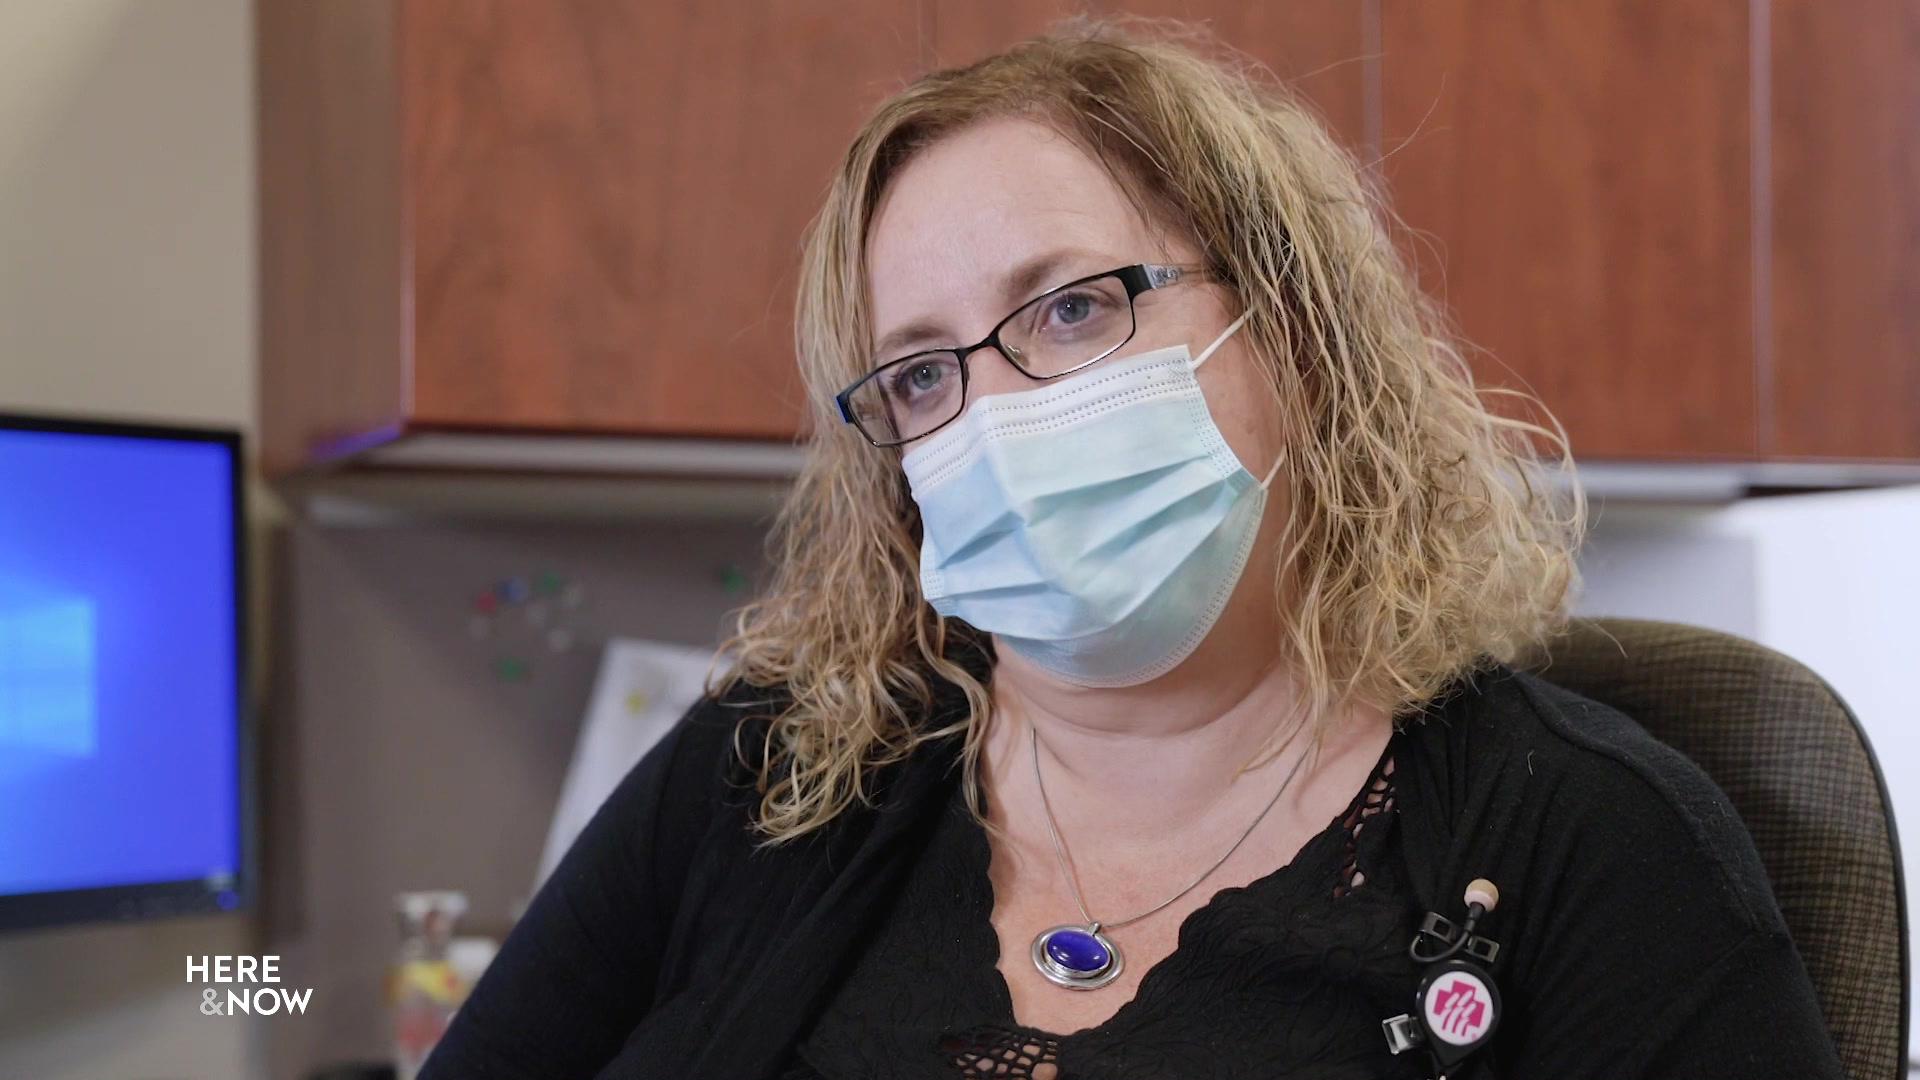 Vicky Varsho wears a mask while seated in an office.